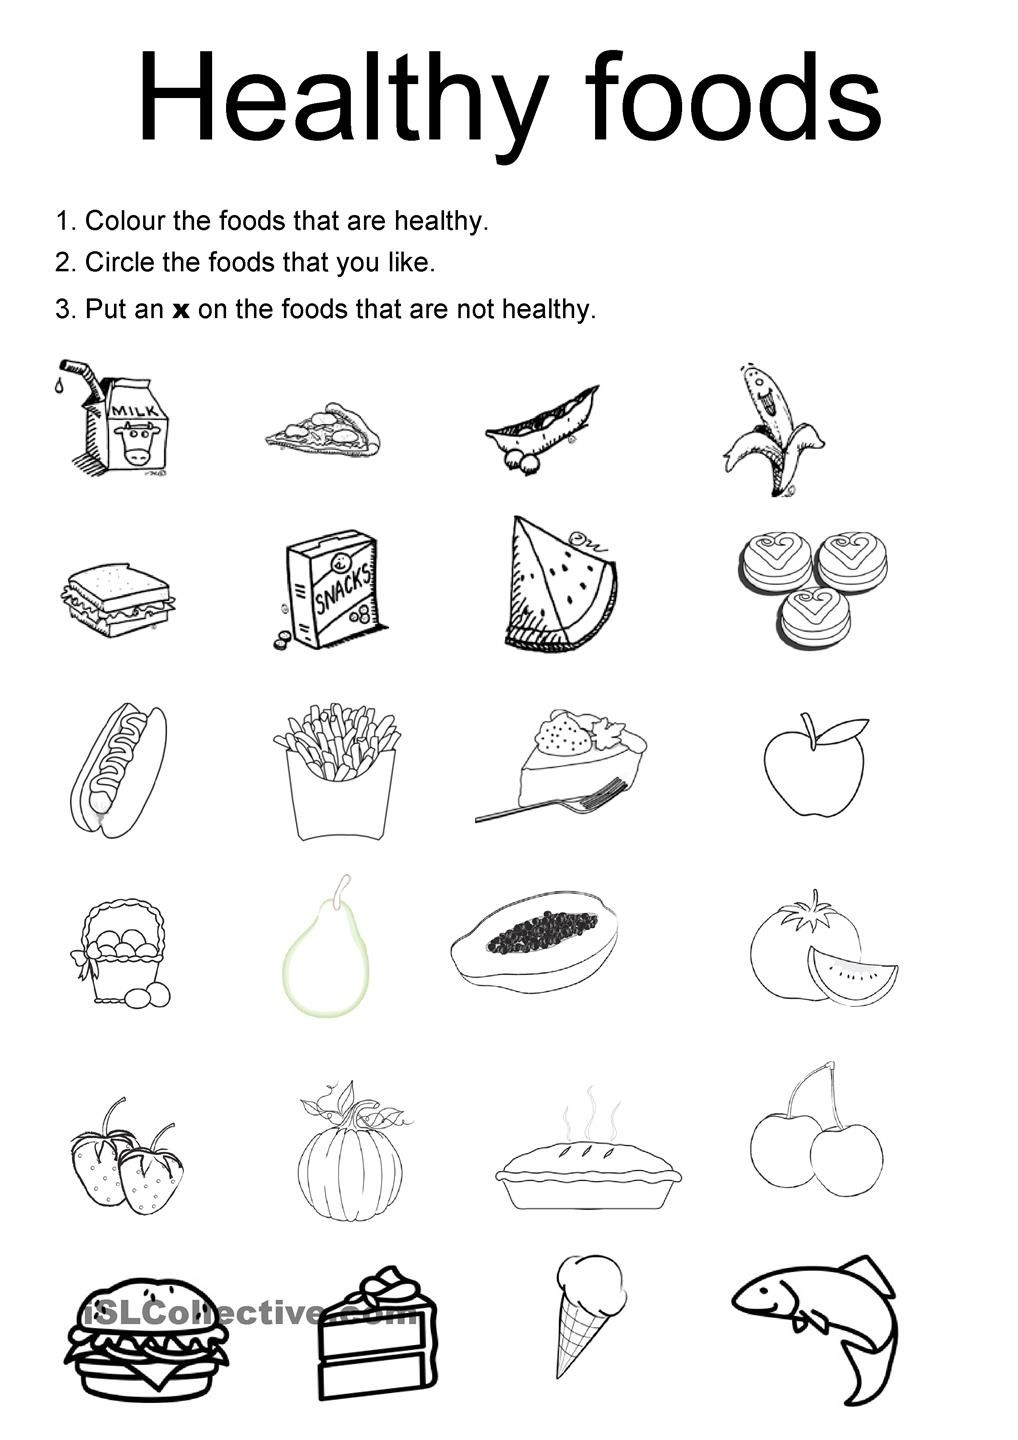 Worksheets Health And Nutrition Worksheets healthy foods projects to try pinterest worksheets galleries for kids good galleries